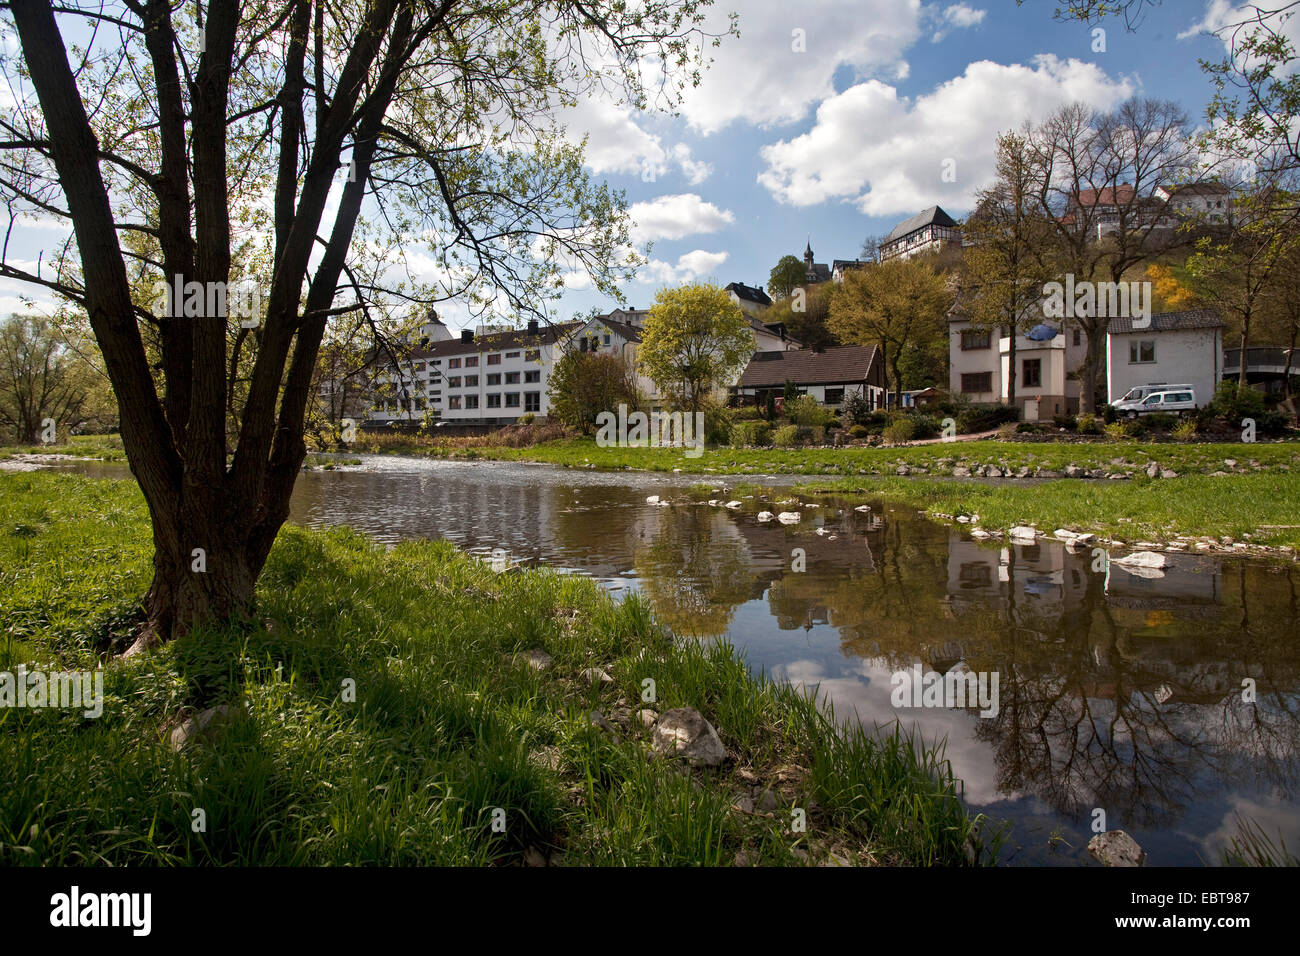 idyllic Ruhr river flows through the city, Germany, North Rhine-Westphalia, Sauerland, Arnsberg - Stock Image